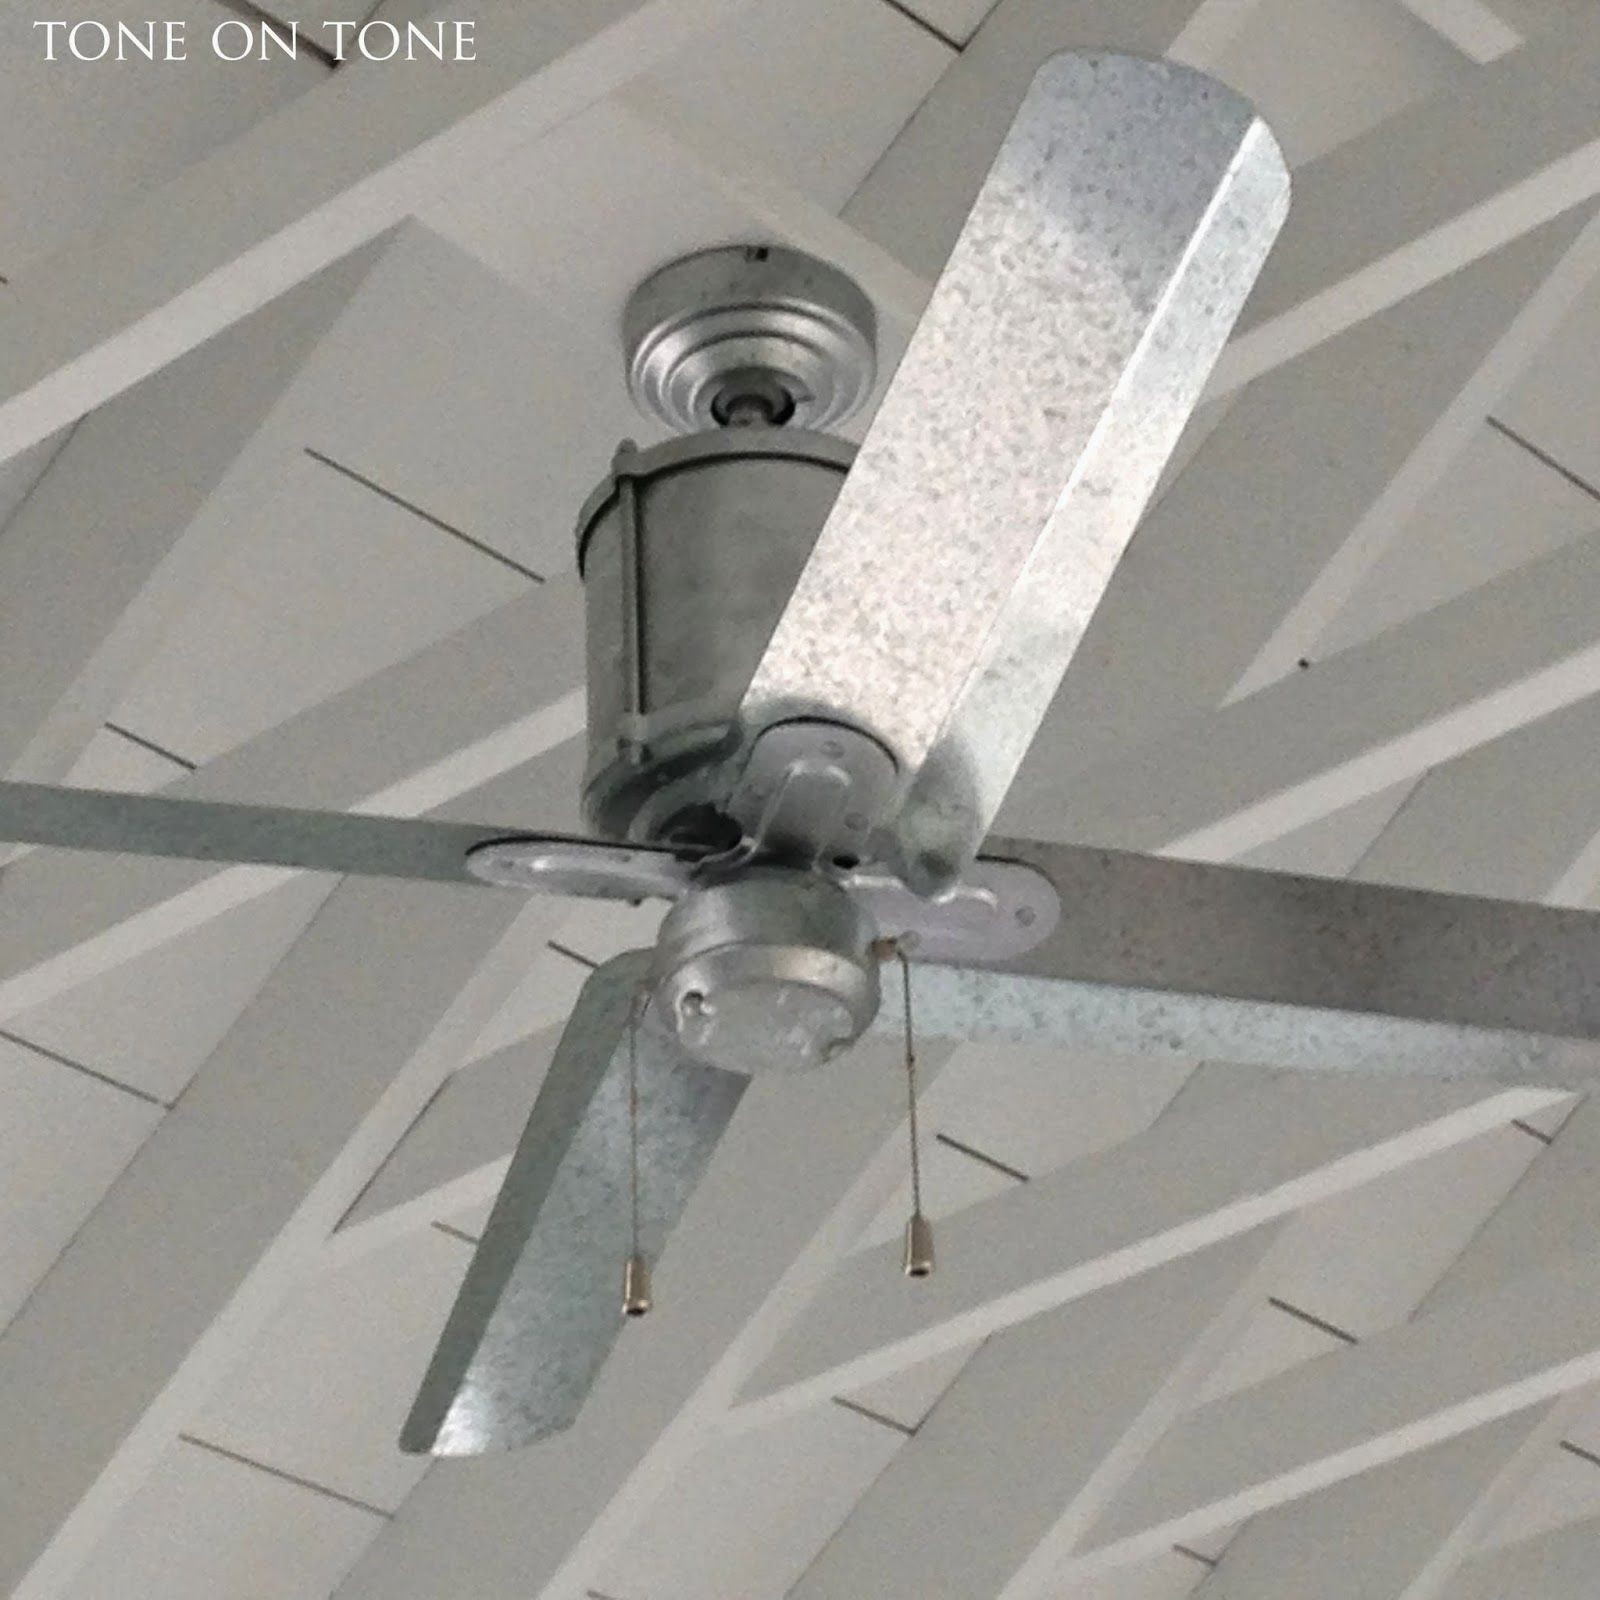 galvanized industrial ceiling fan at 1810 Maine house from Tone on